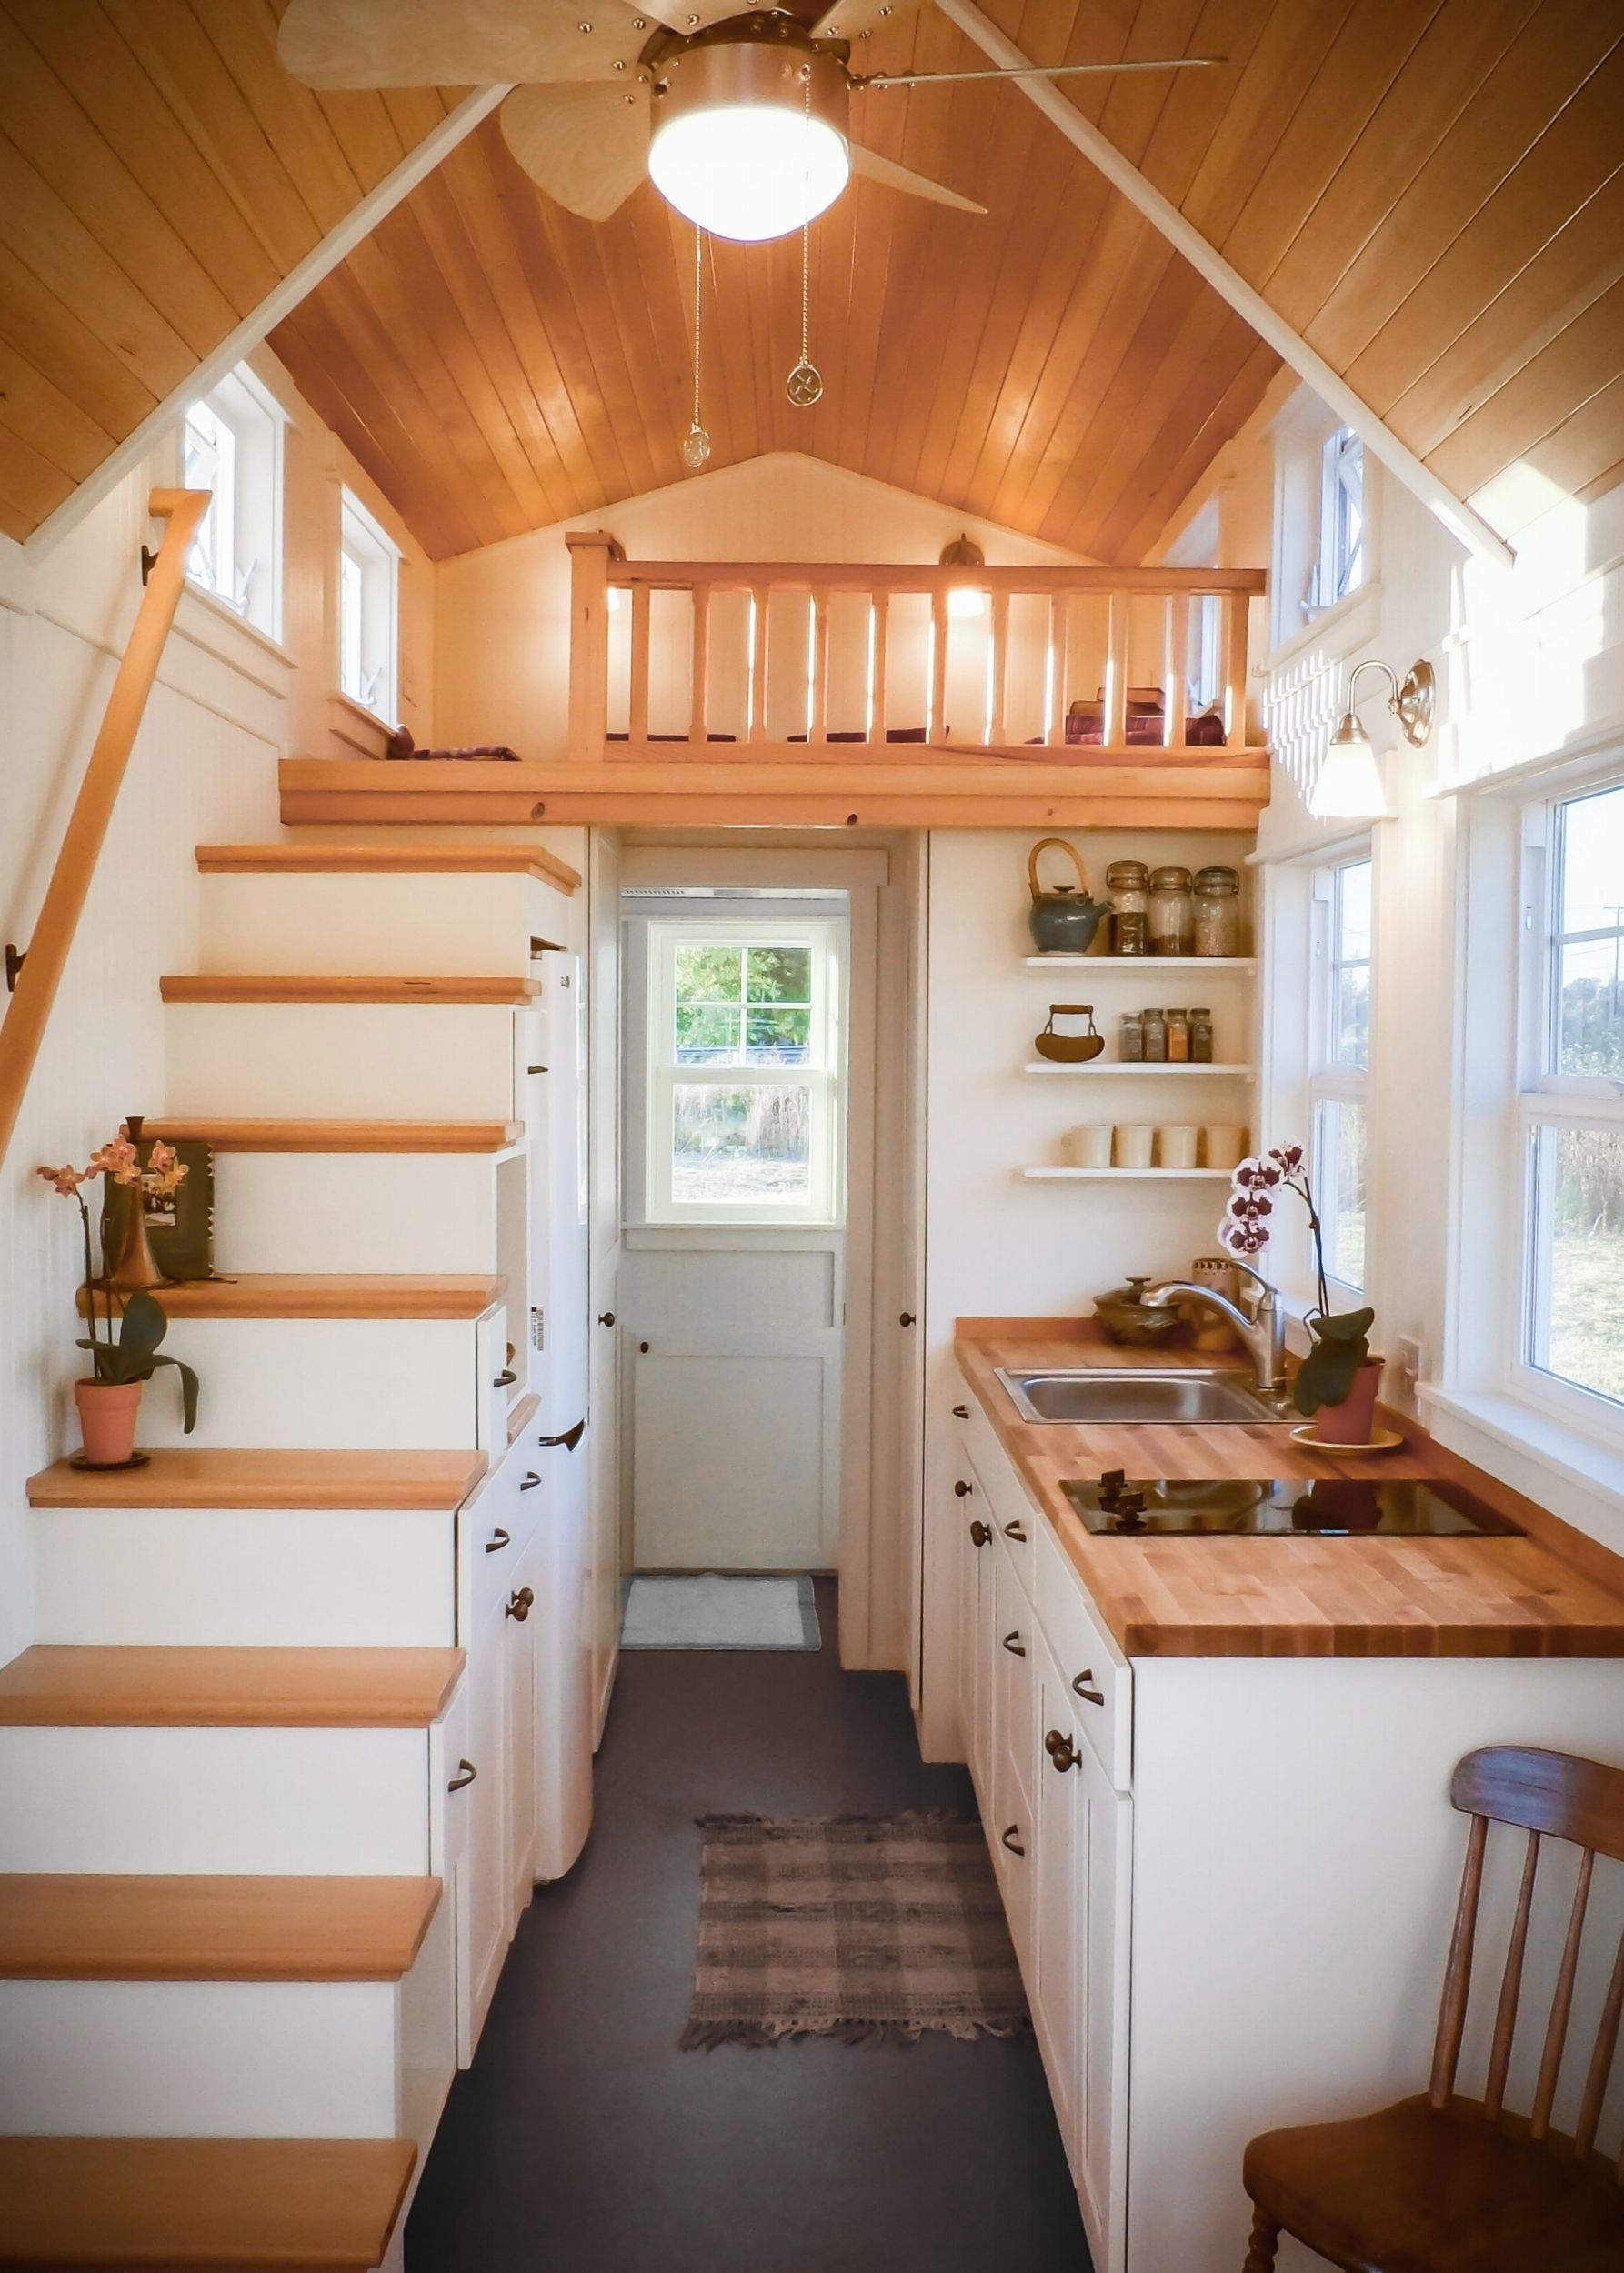 LowrieStairs4.jpg | Dream kitchens,cabins,tiny homes | Pinterest ...